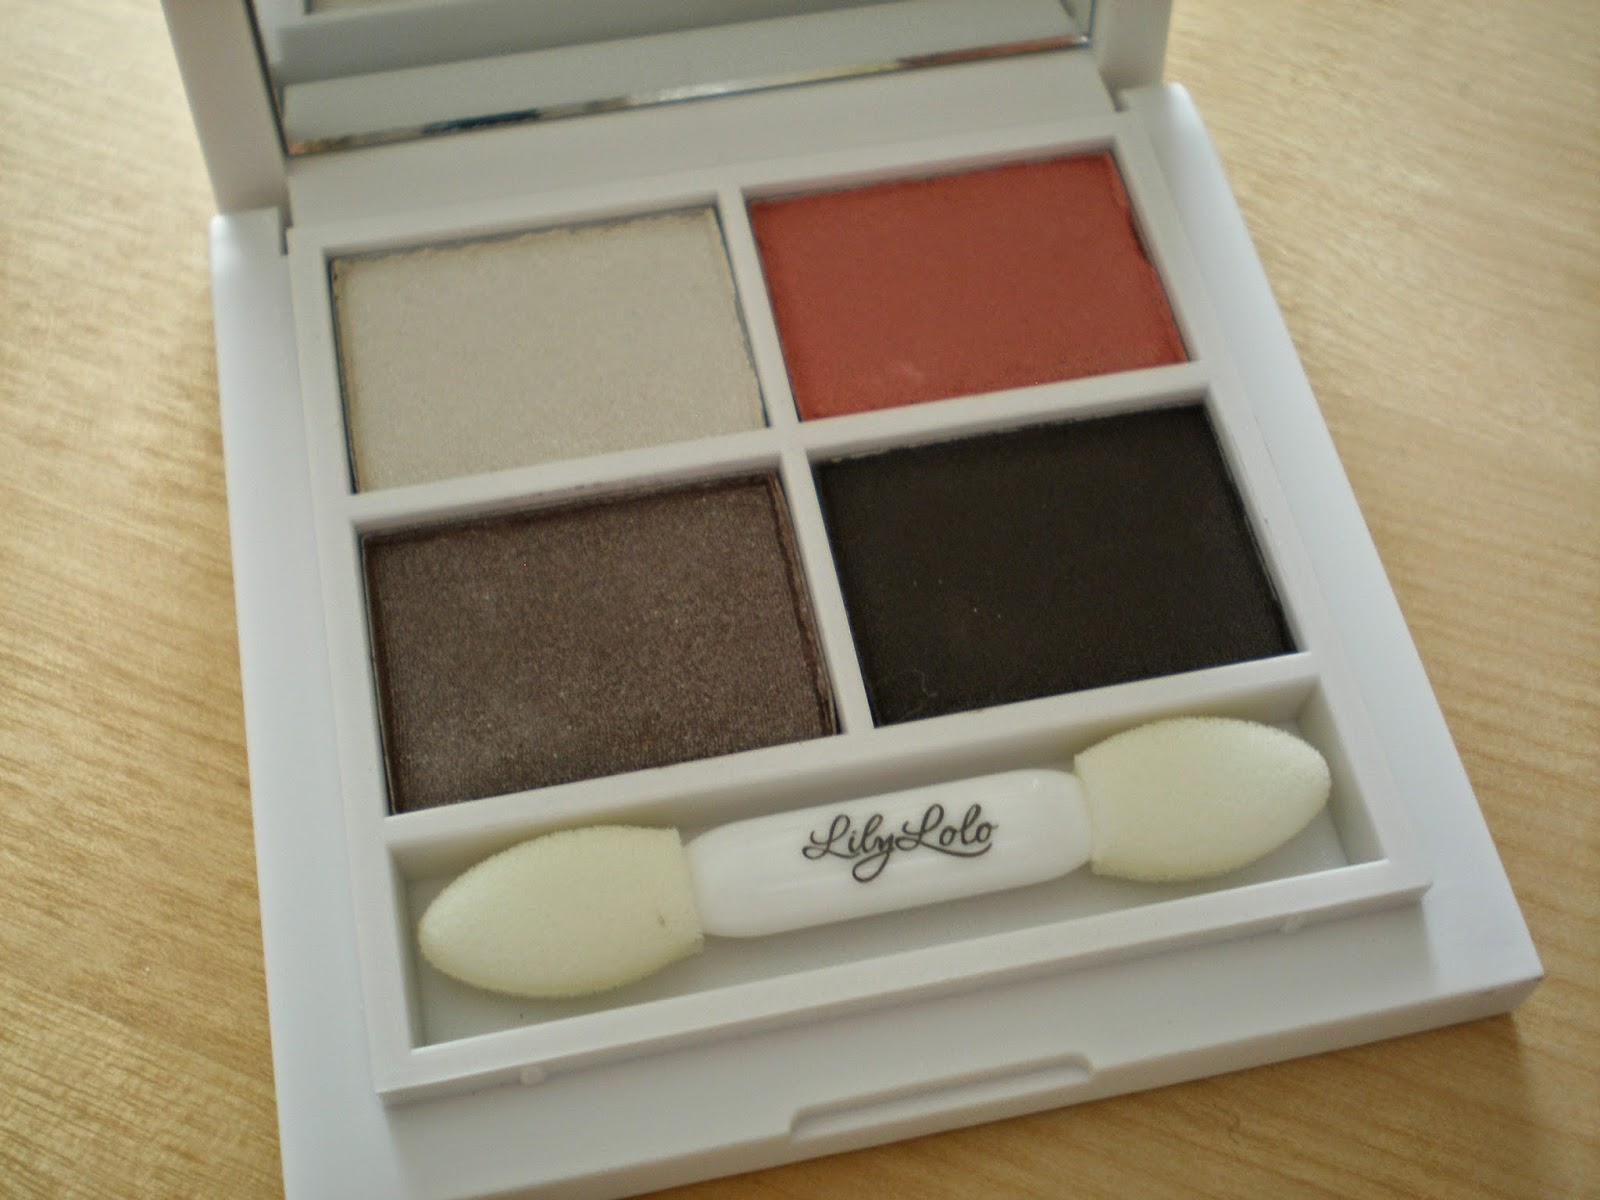 Lily Lolo - Pressed Mineral Eye Shadow in Smoky Rose